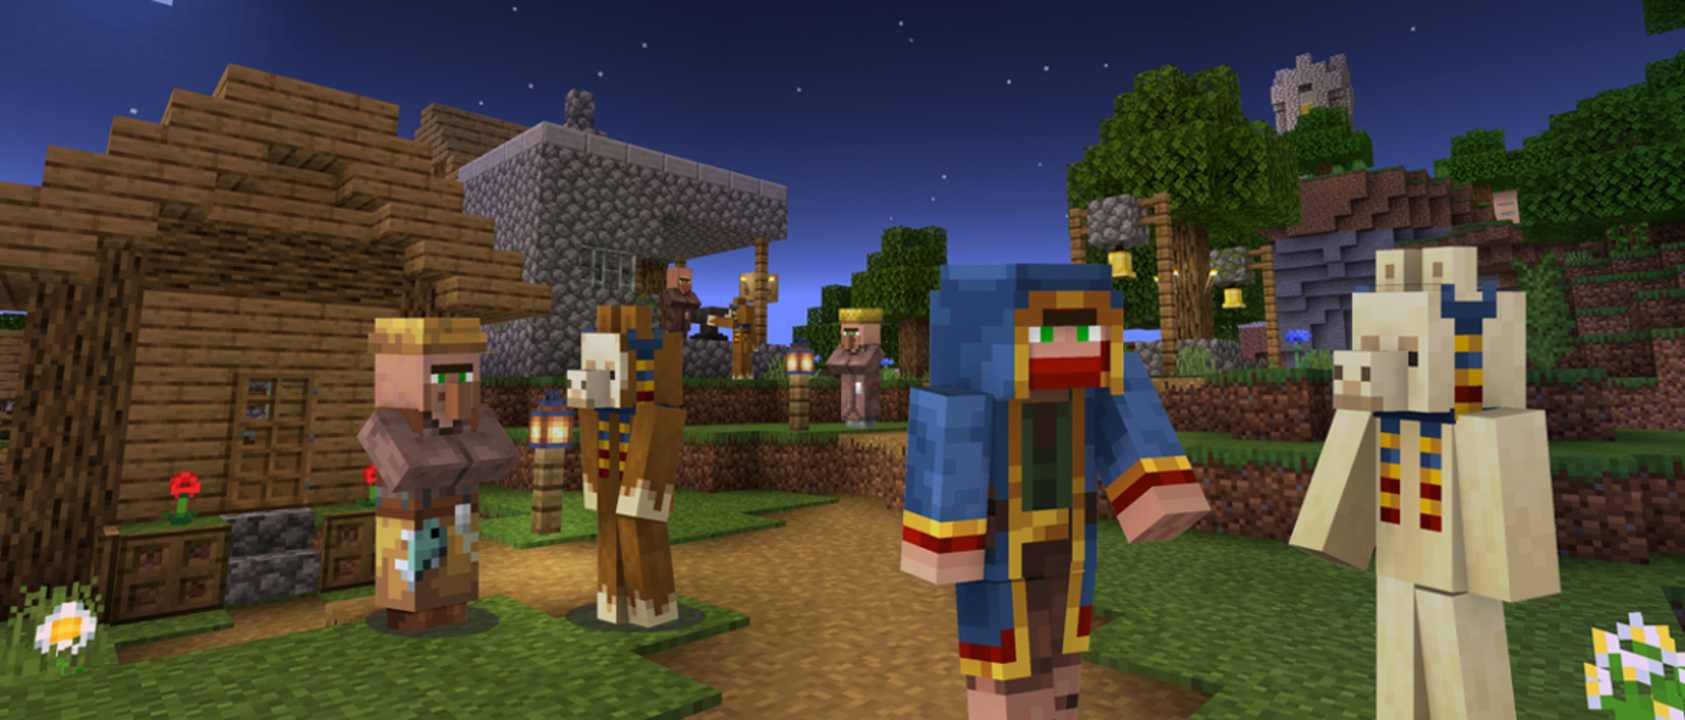 Minecraft 'The Travelling Trader' Gets Downloaded 100K Times In Less Than 24 Hours; Fans Get 2 Llama Skins